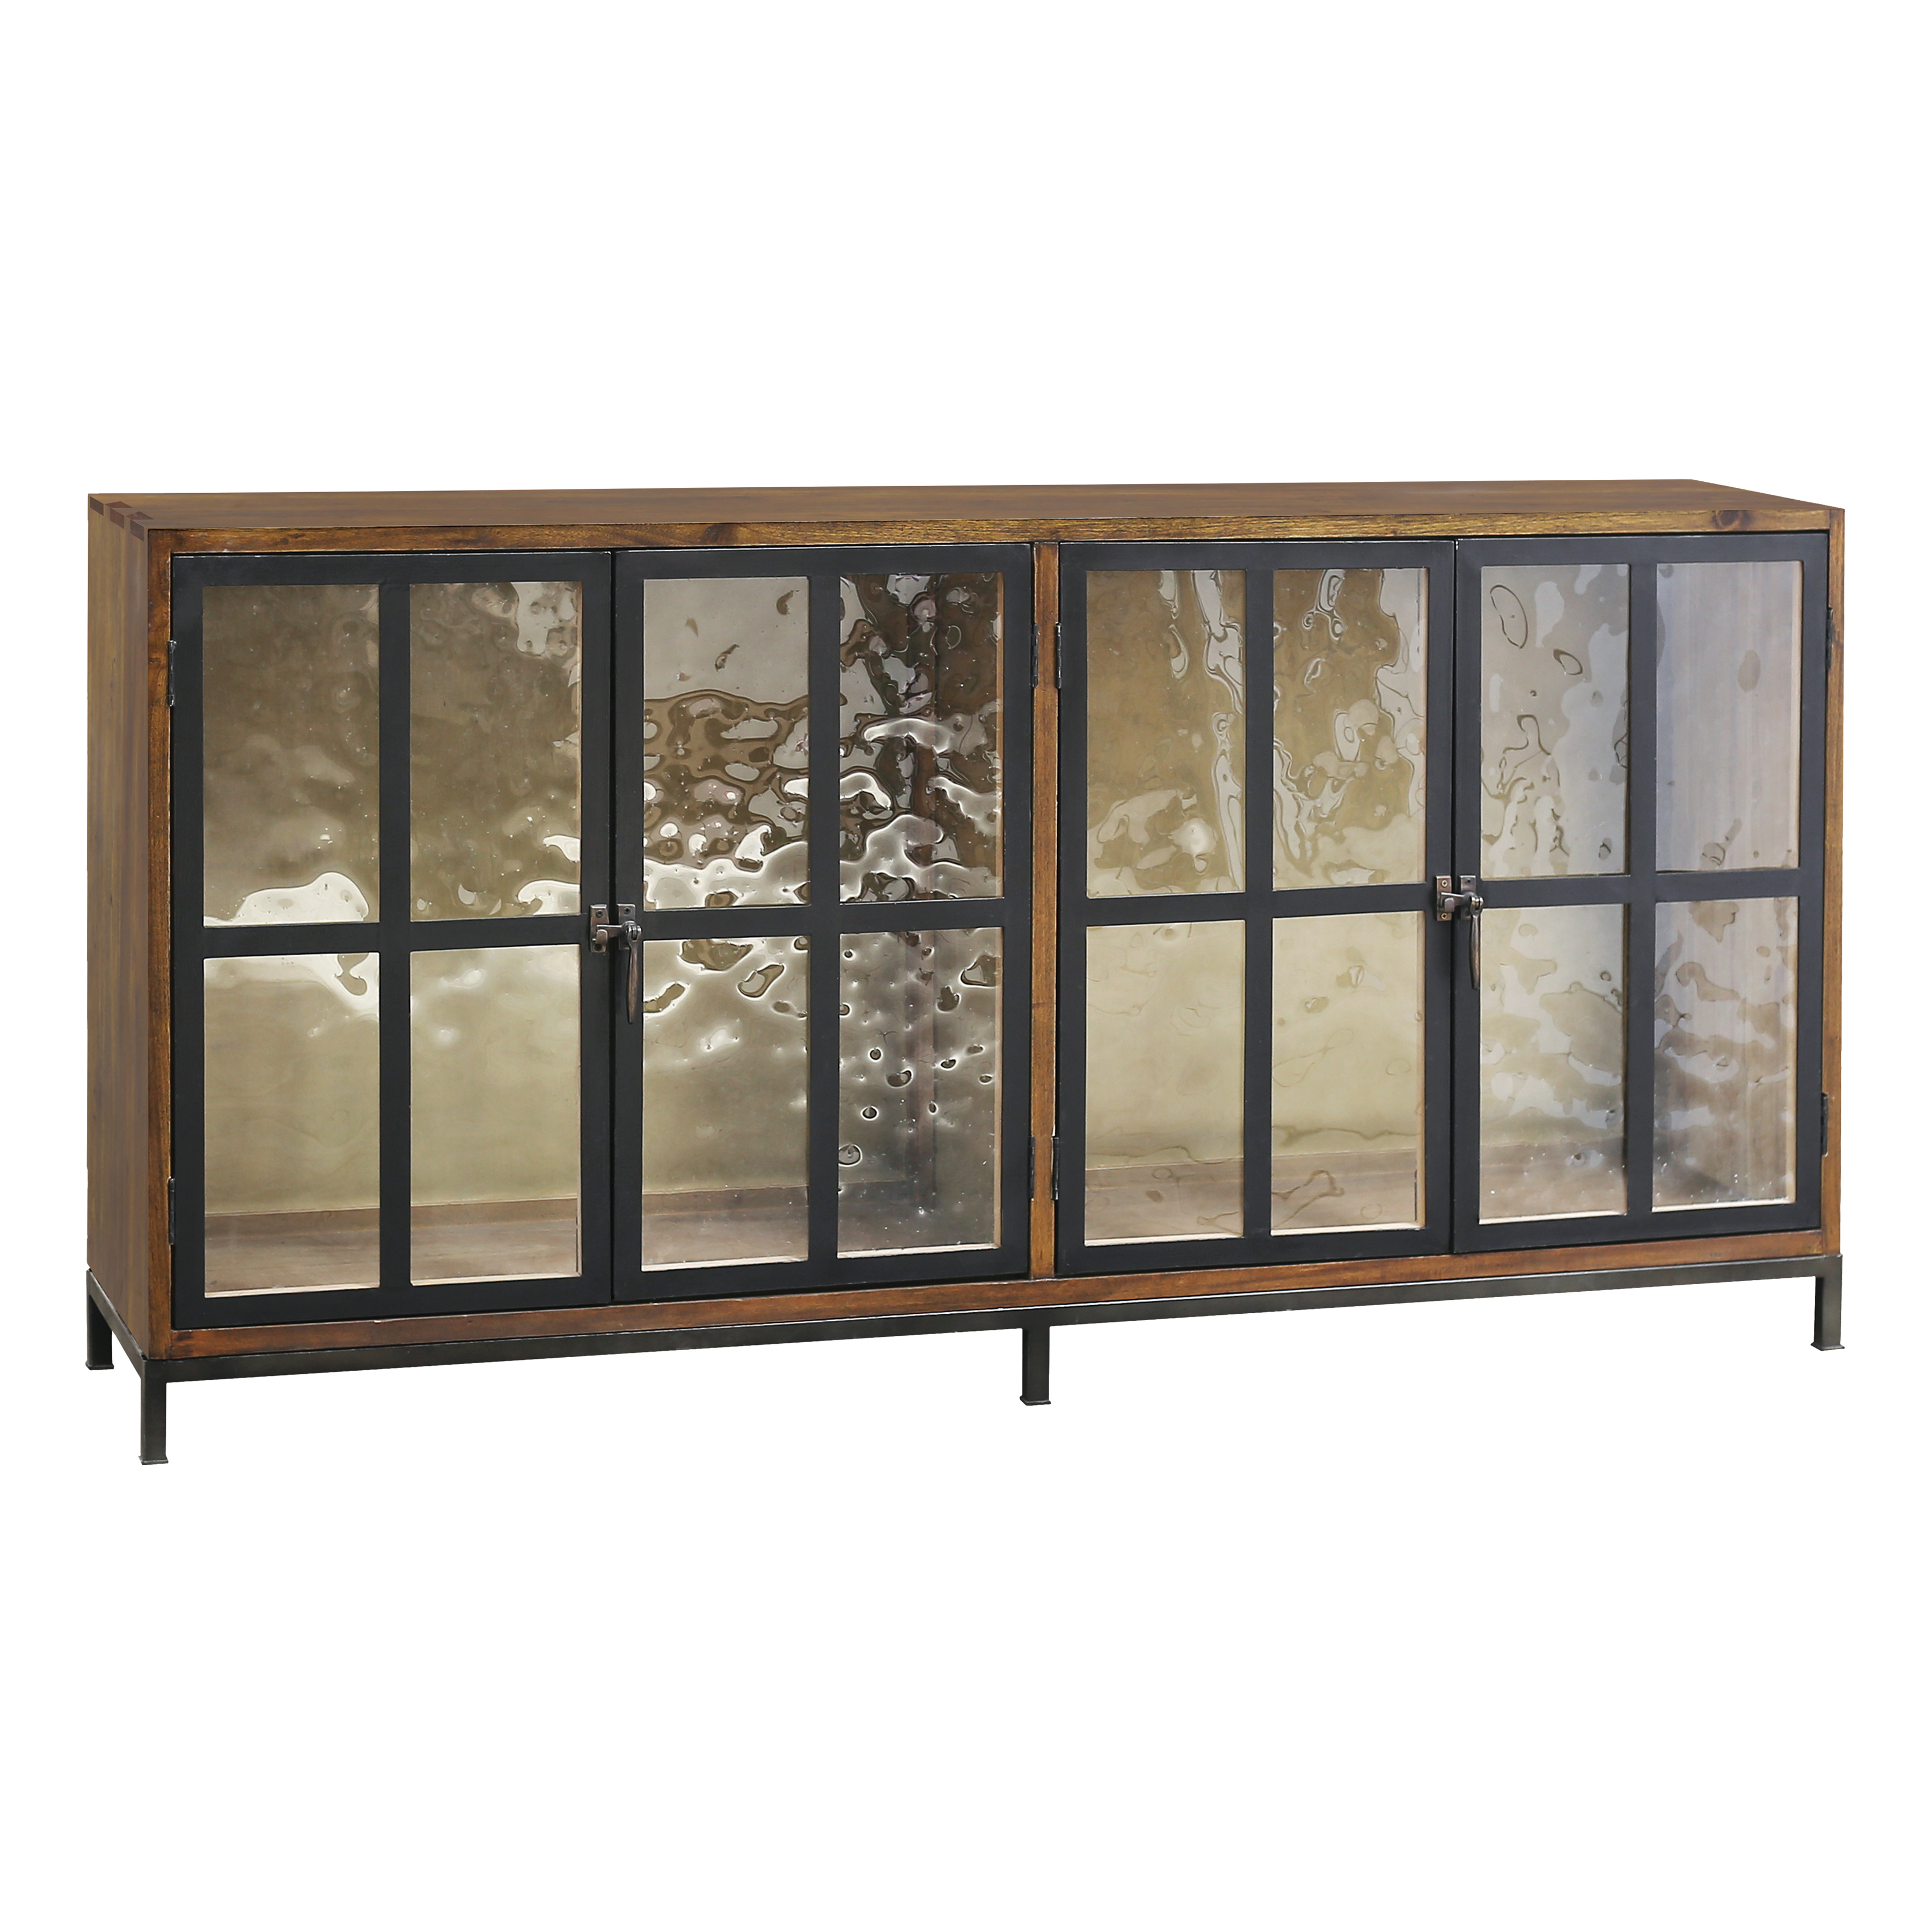 Modern America 4-Door Cabinet in Timber and Metal with Hand-Poured Glass | Elk Home